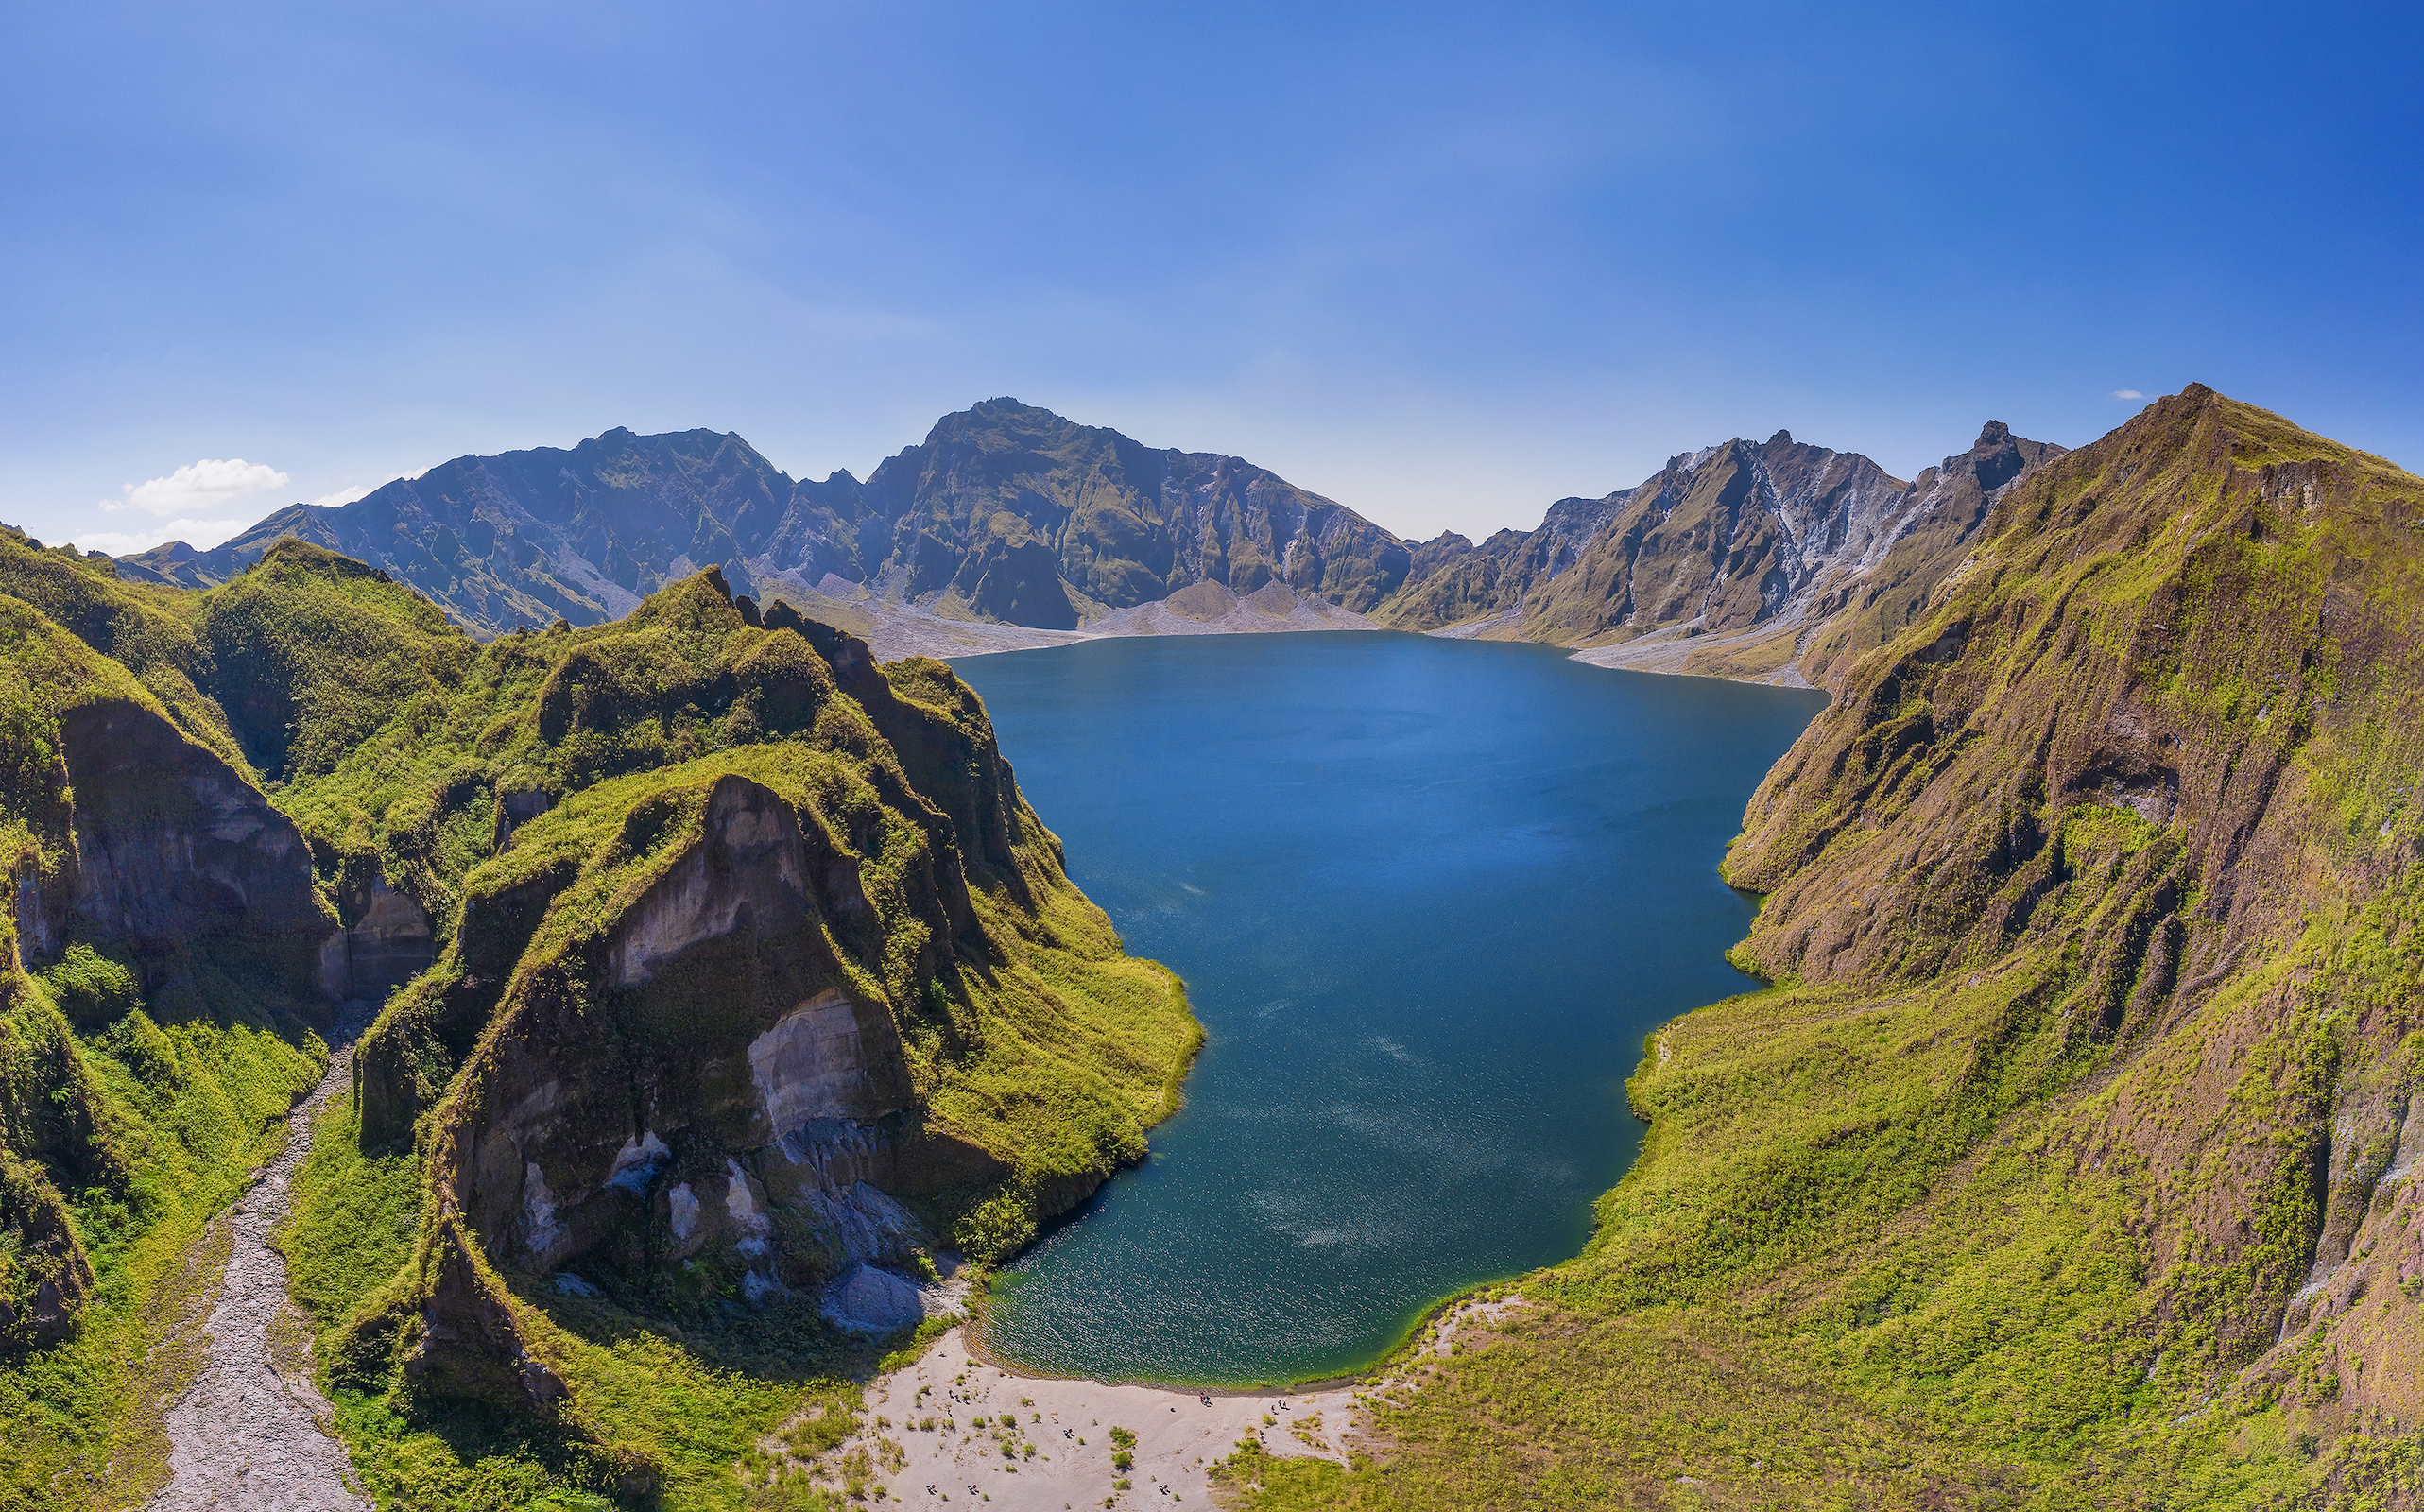 Mt. Pinatubo Day Hike with 4x4 Trail Ride Private Tour from Manila